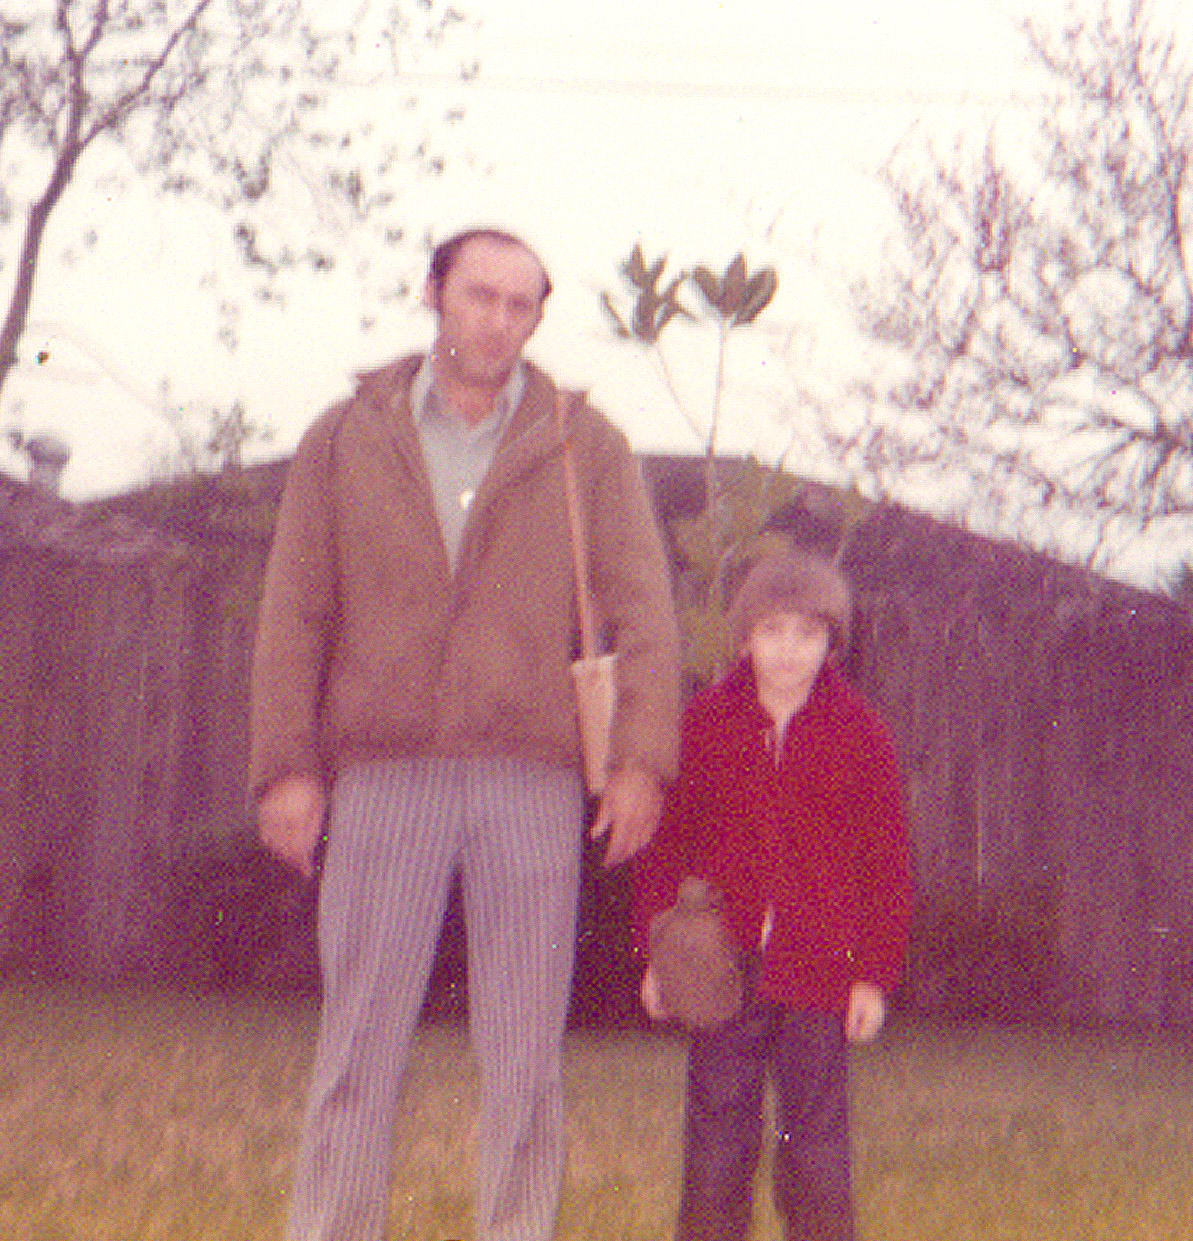 My father and I ready for the hunt. Since I'm not wearing glasses, this must have been taken just before my poor eyesight was diagnosed.